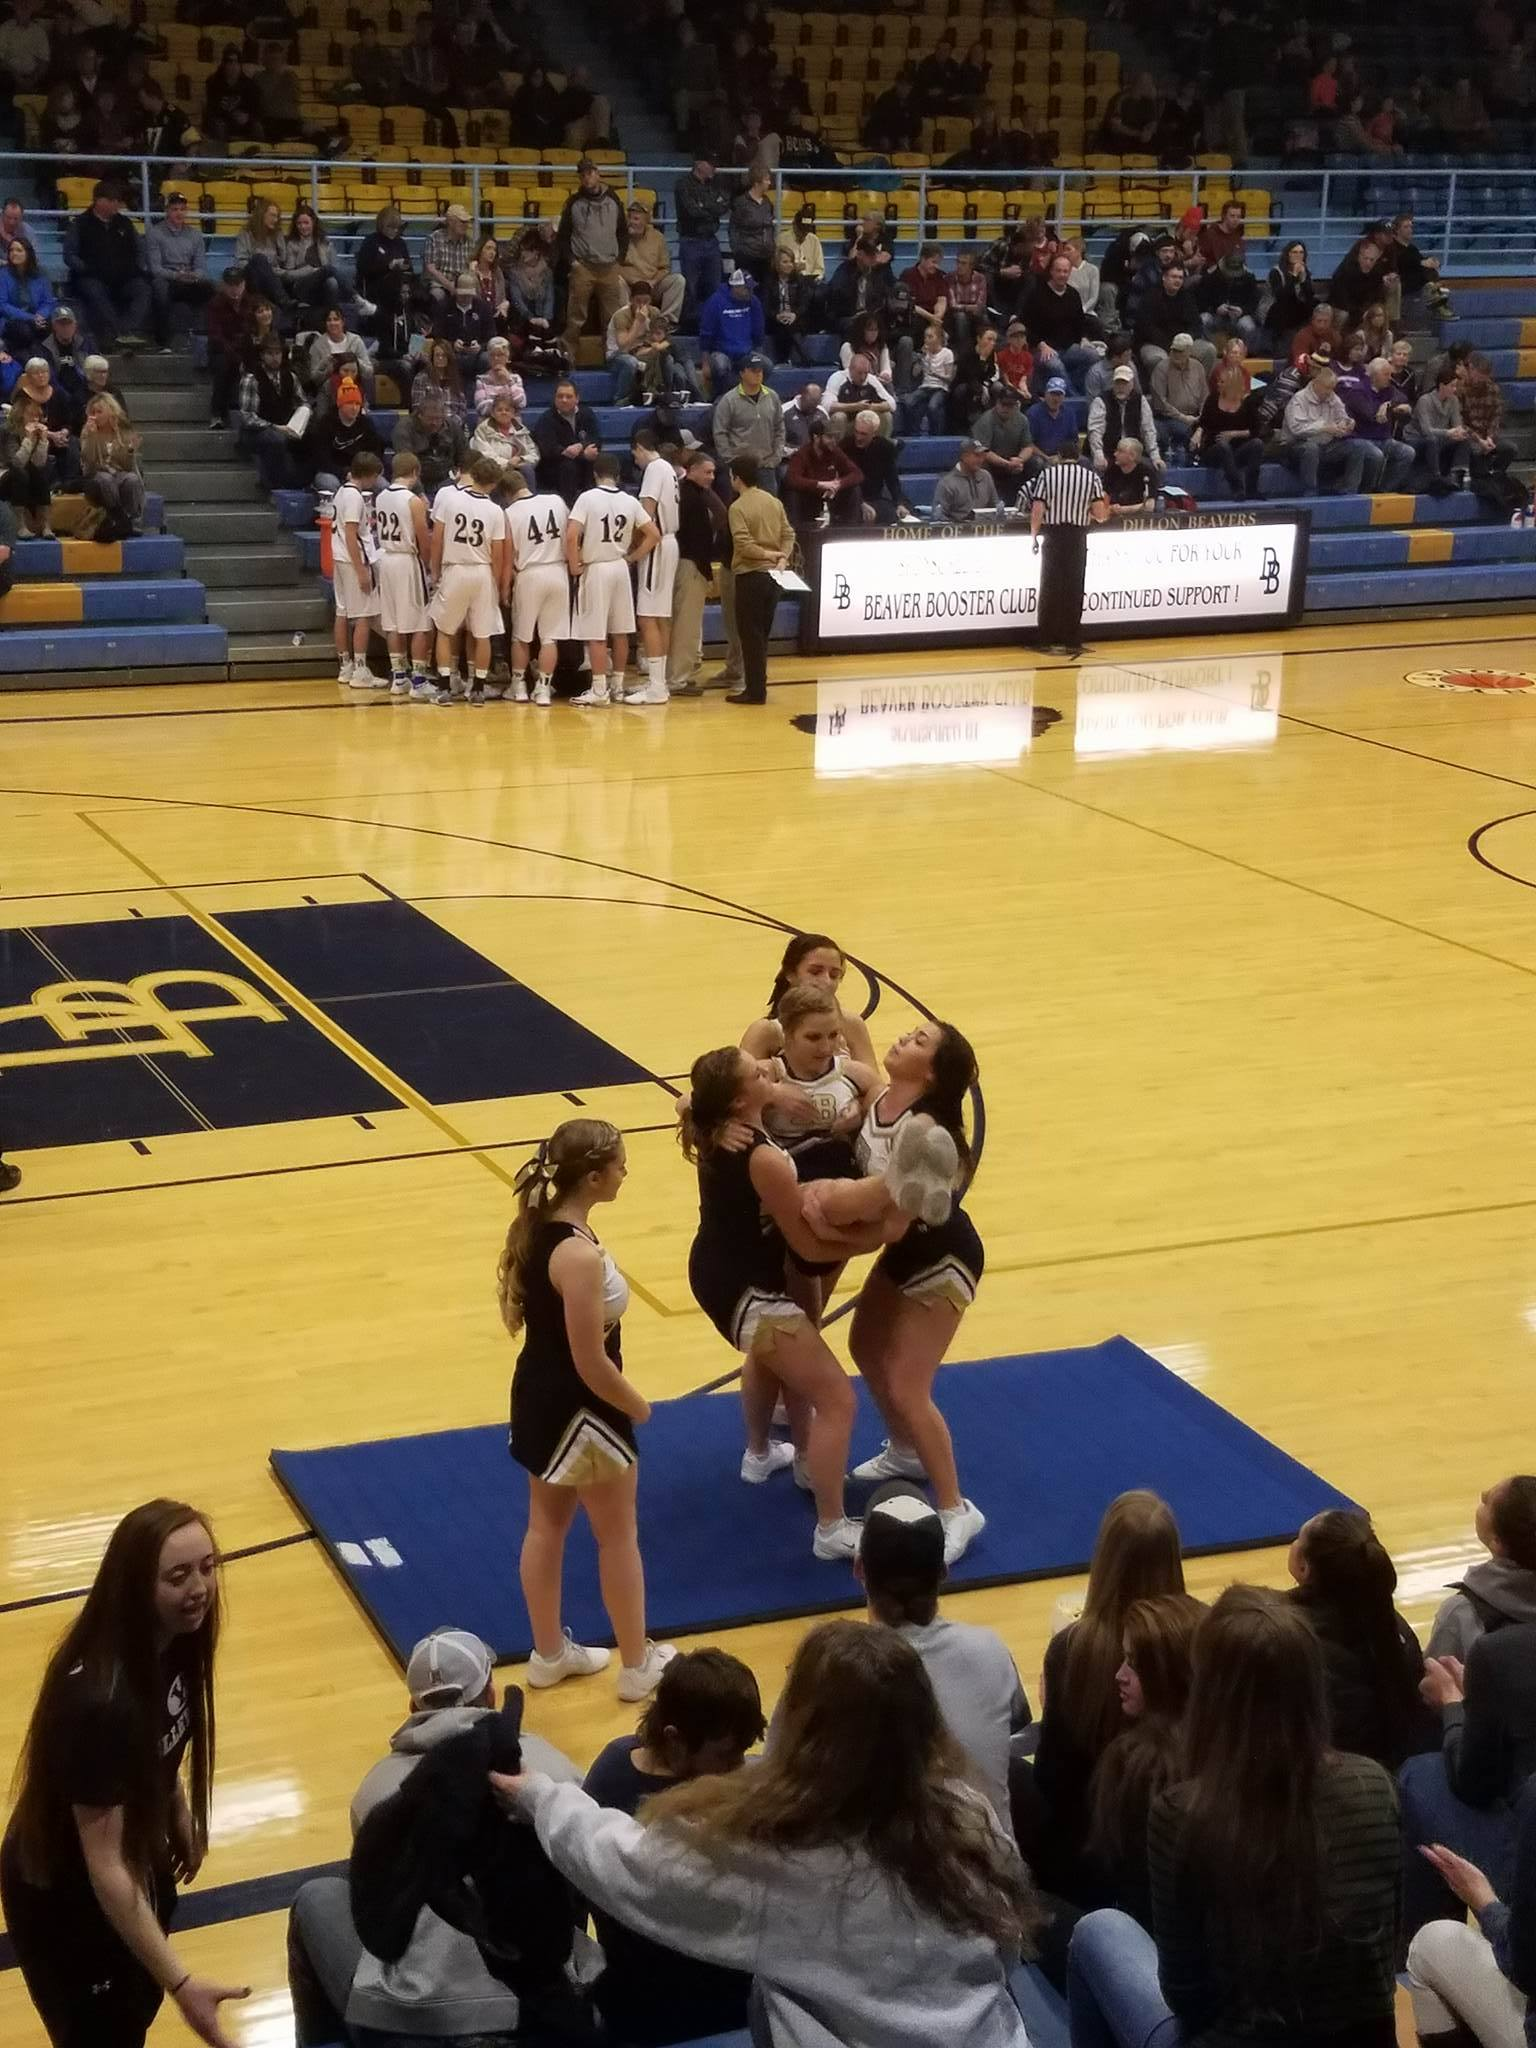 A photo of the cheerleaders finishing a stunt in a gym at a basketball game